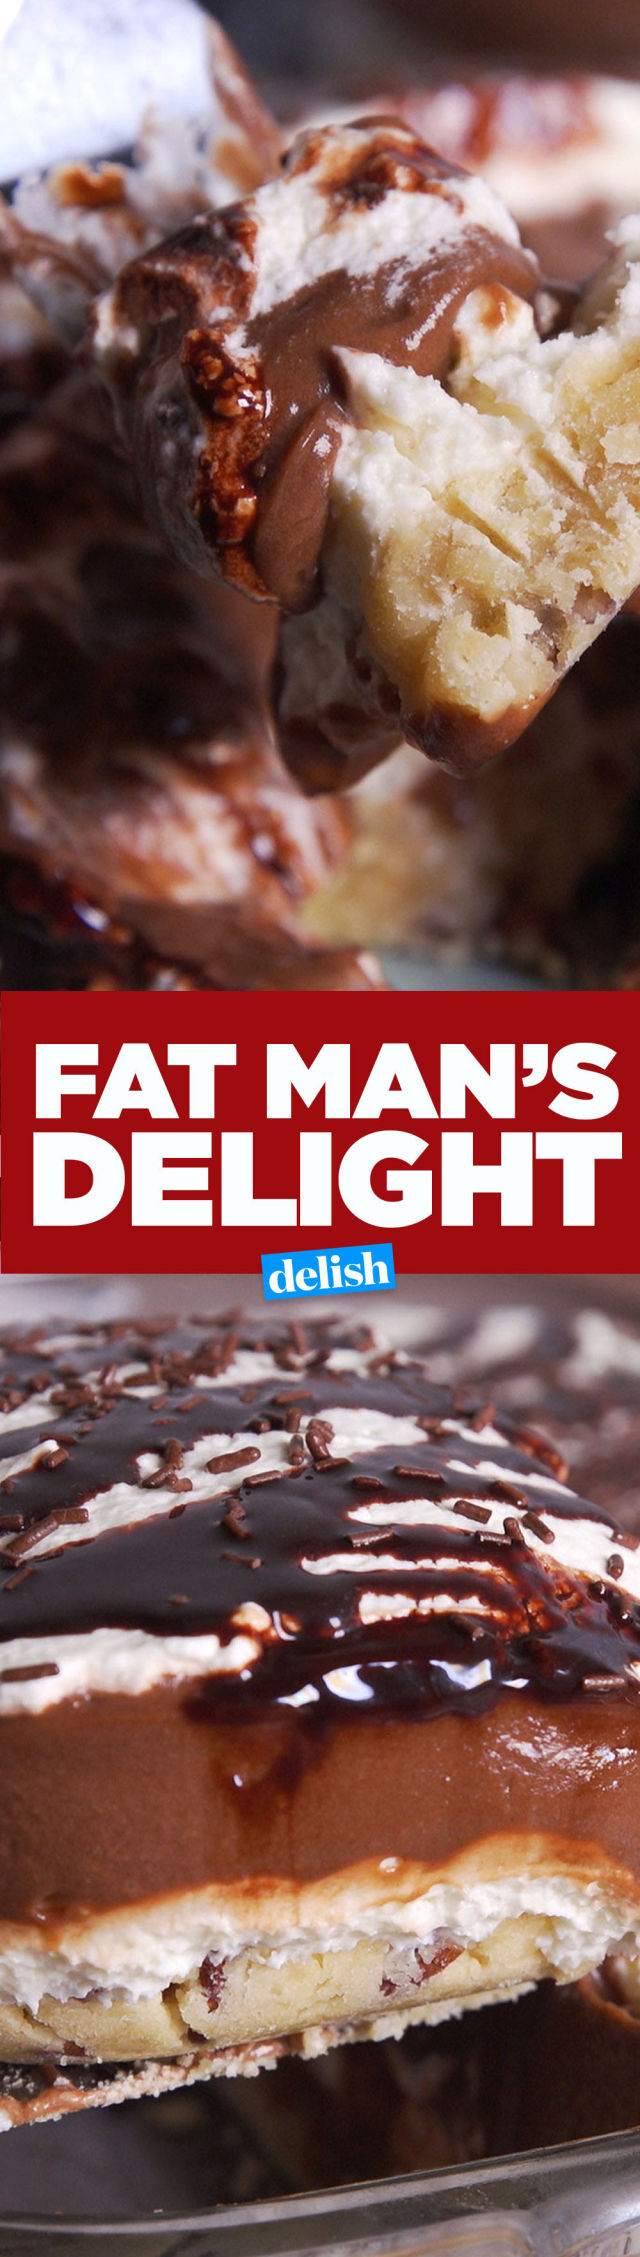 Fat Man's Delight - Delish.com